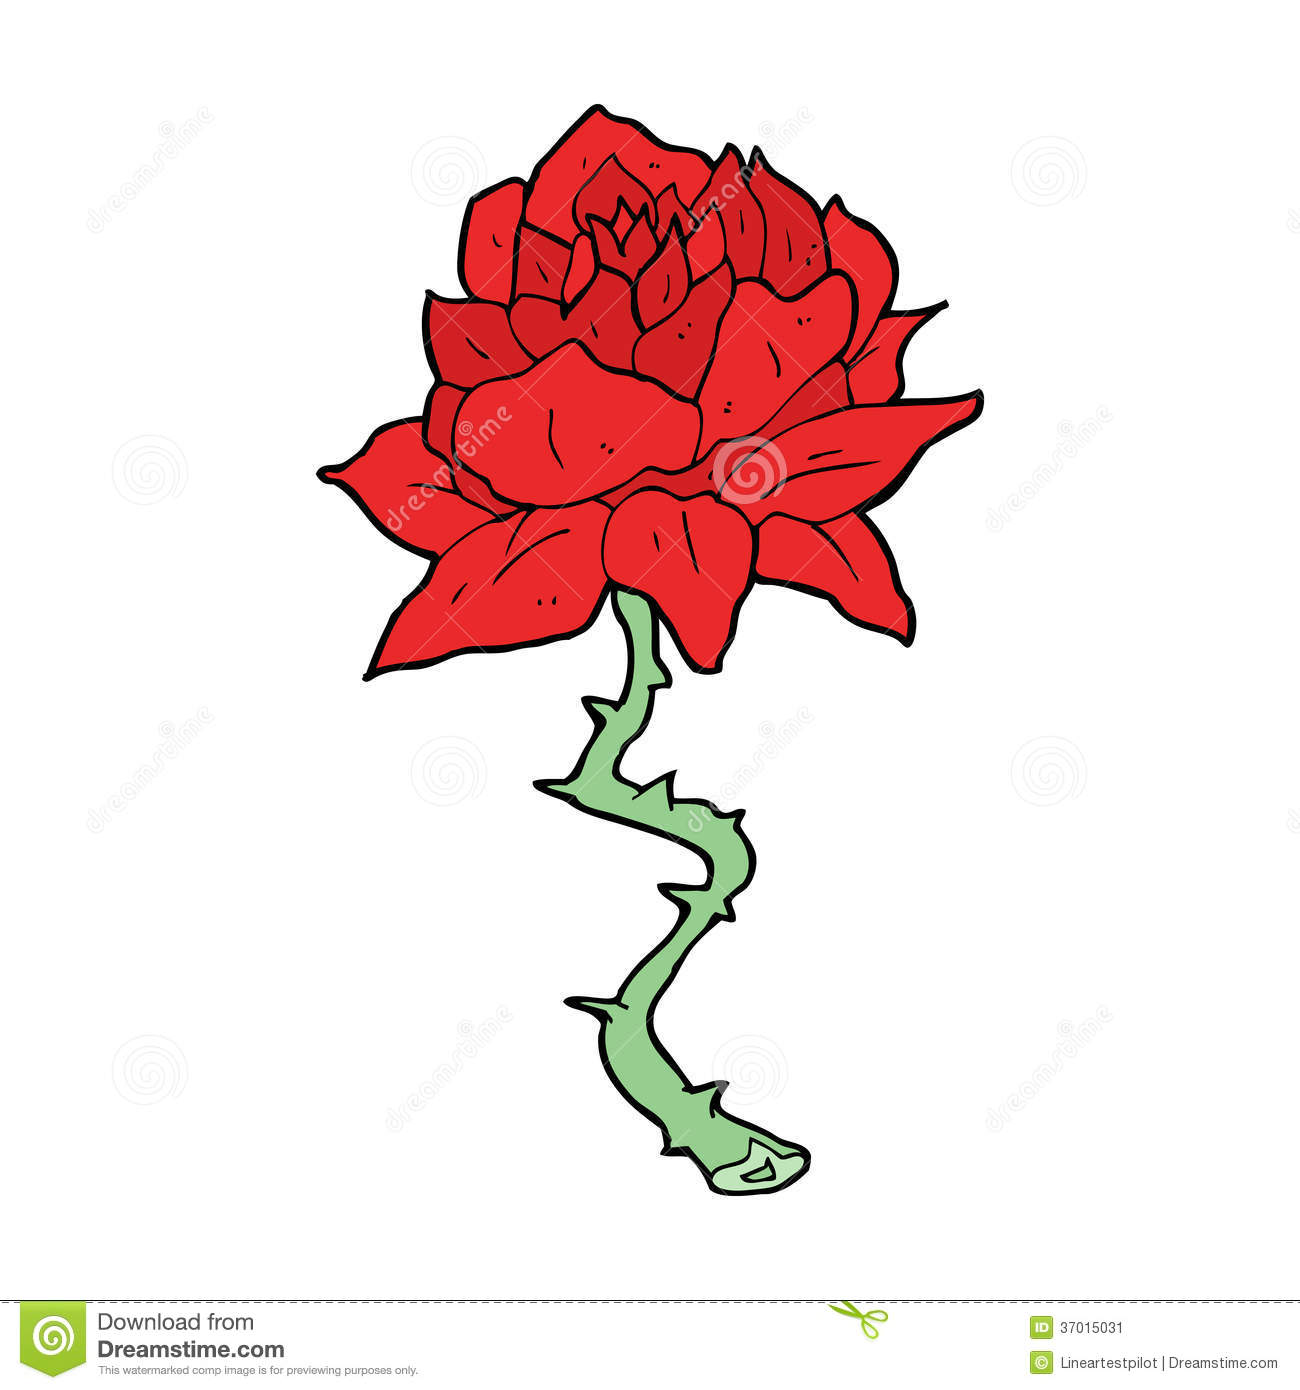 How To Draw A Cartoon Rose By Flowers Pop Culture